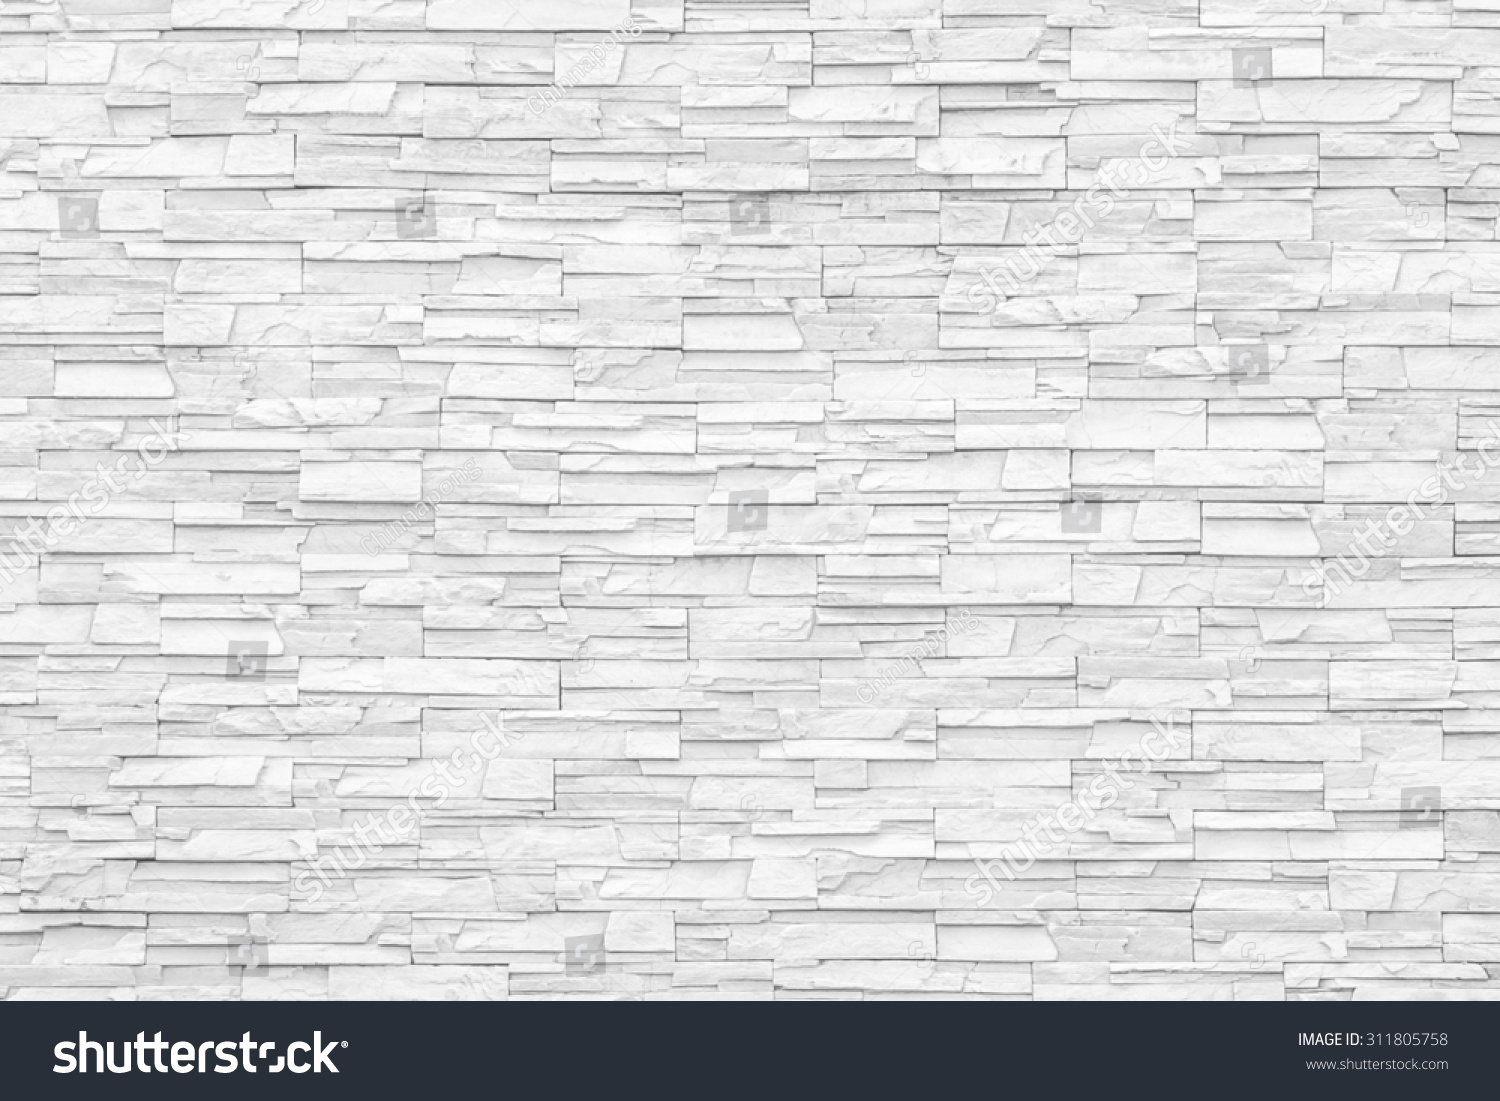 white stone tile texture. White marble brick stone tile wall grunge rustic texture background Marble Brick Stone Tile Wall Stock Photo  Royalty Free